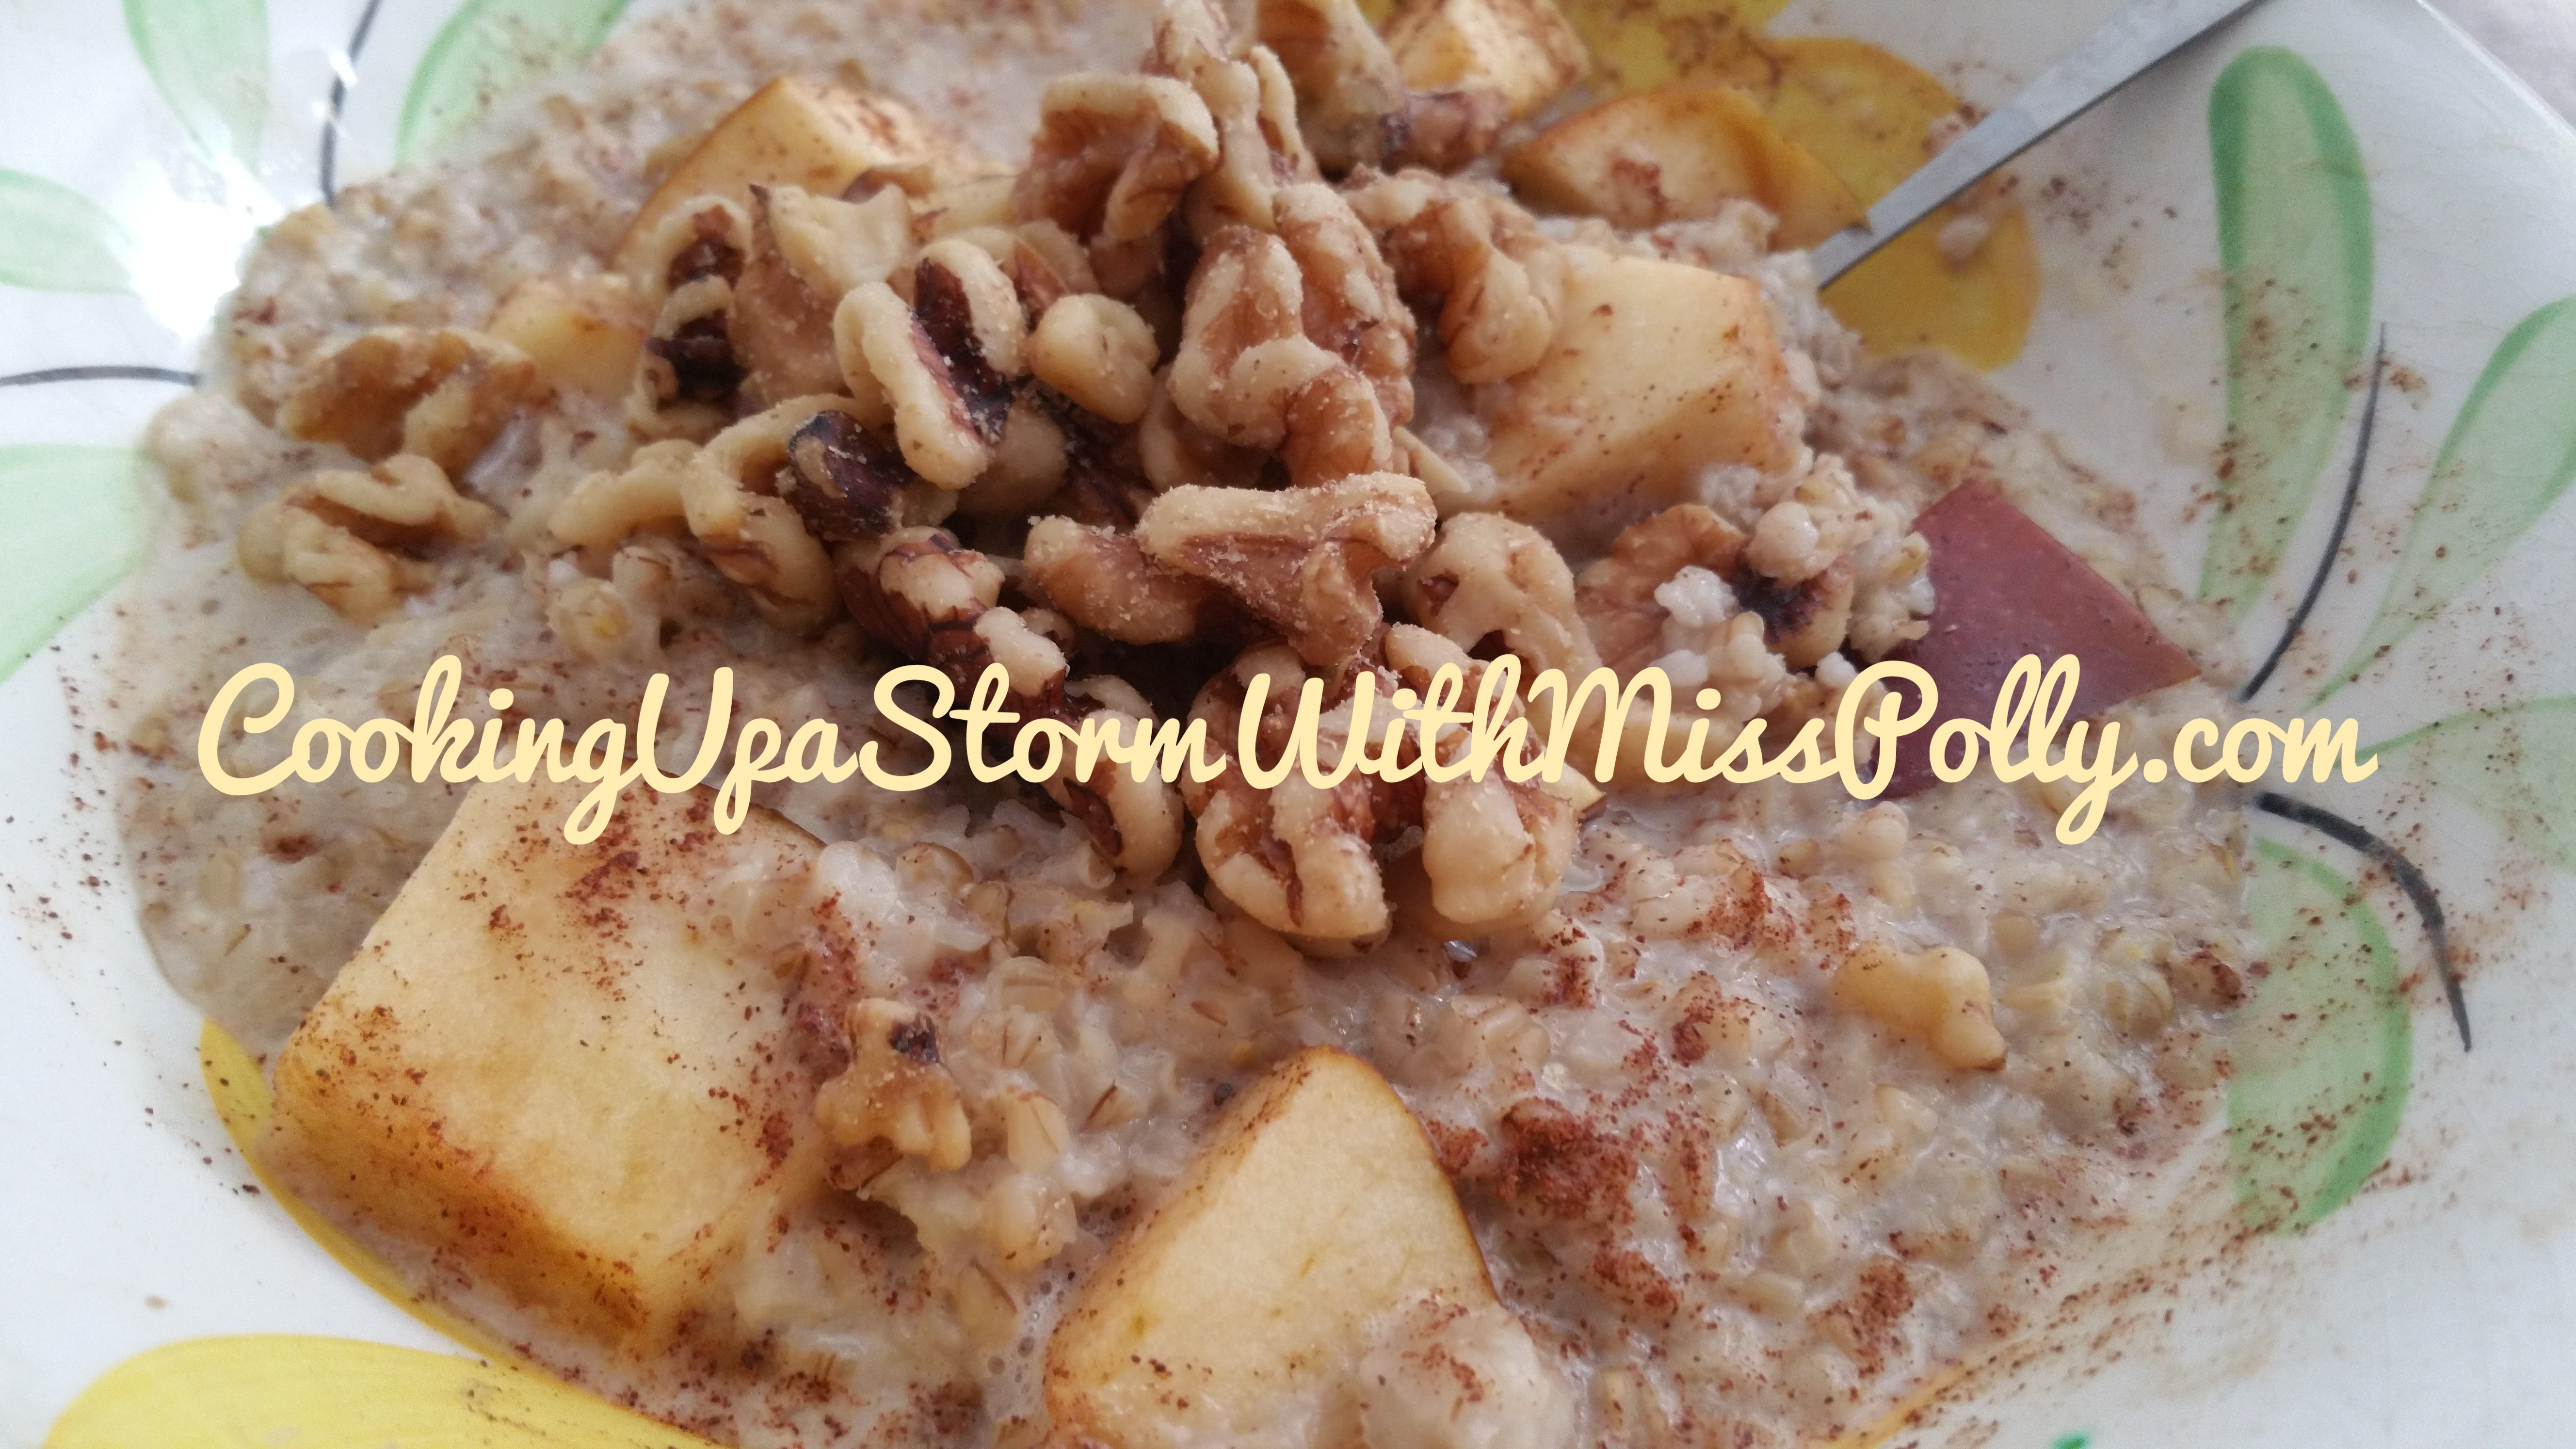 Steel Cut Apple Cinnamon Walnut Oatmeal to fuel a Super Healthy, Productive Day